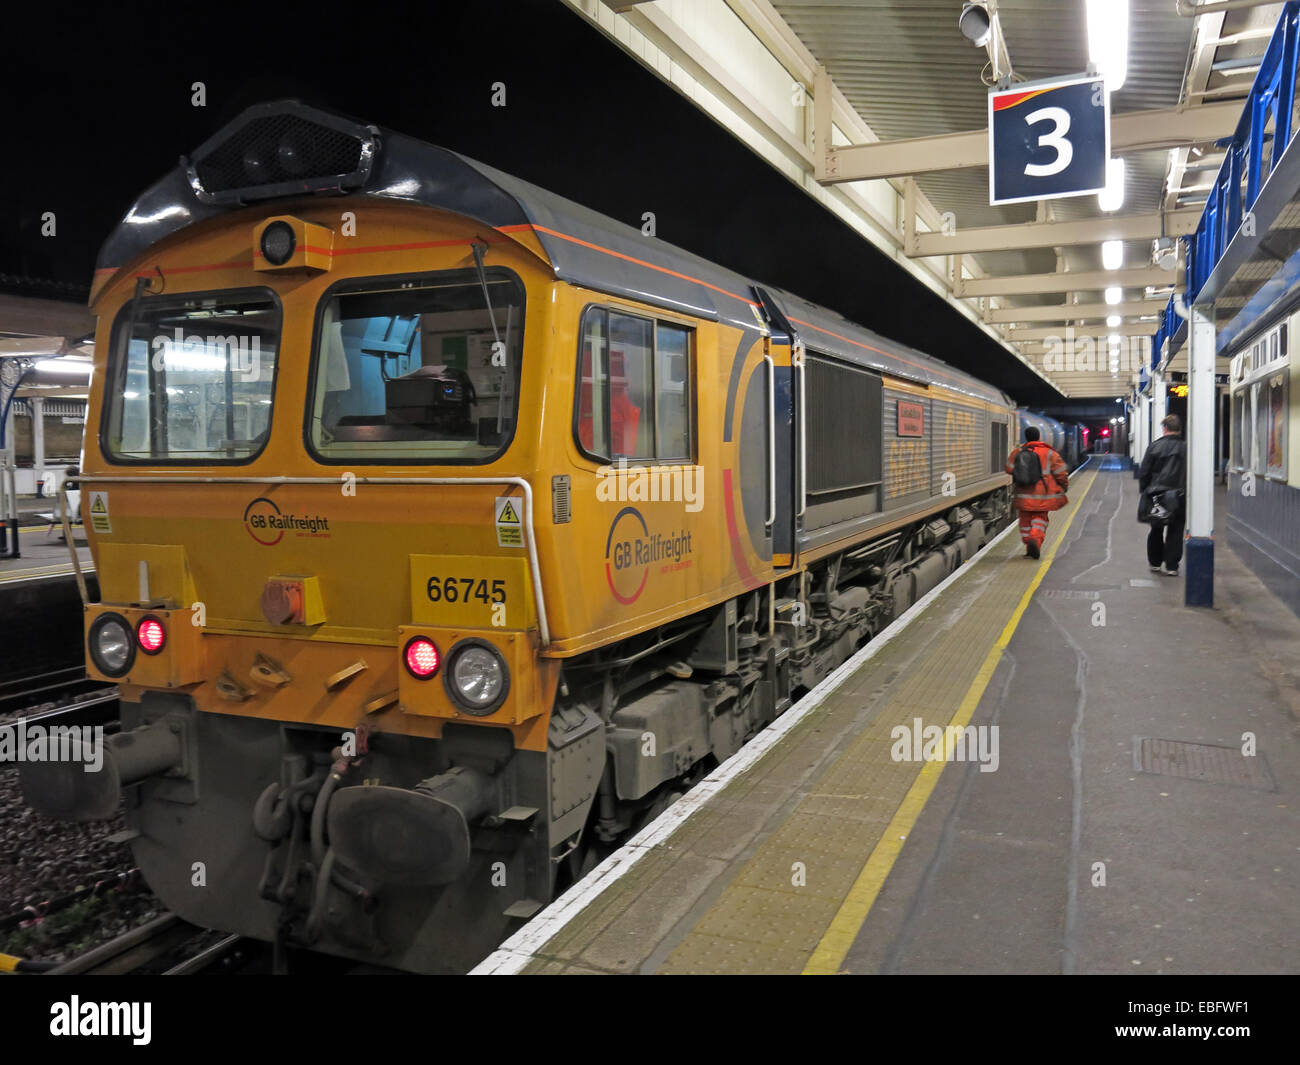 platform,platforms,train,trains,lit,lights,Battersea,tube,tube train,passenger,passengers,guard,accident,England,UK,GB,Great Britain,Clapham,Junction,Railway,station,at Night,rail,rails,lines,carriage,carriages,freight,engine,freight engine,66745,55745,yellow,GBRf,FGW No.153361,Gotonysmith,tube trains,mind,the,gap,mind the gap,dusk,nightshot,nightshot,Buy Pictures of,Buy Images Of